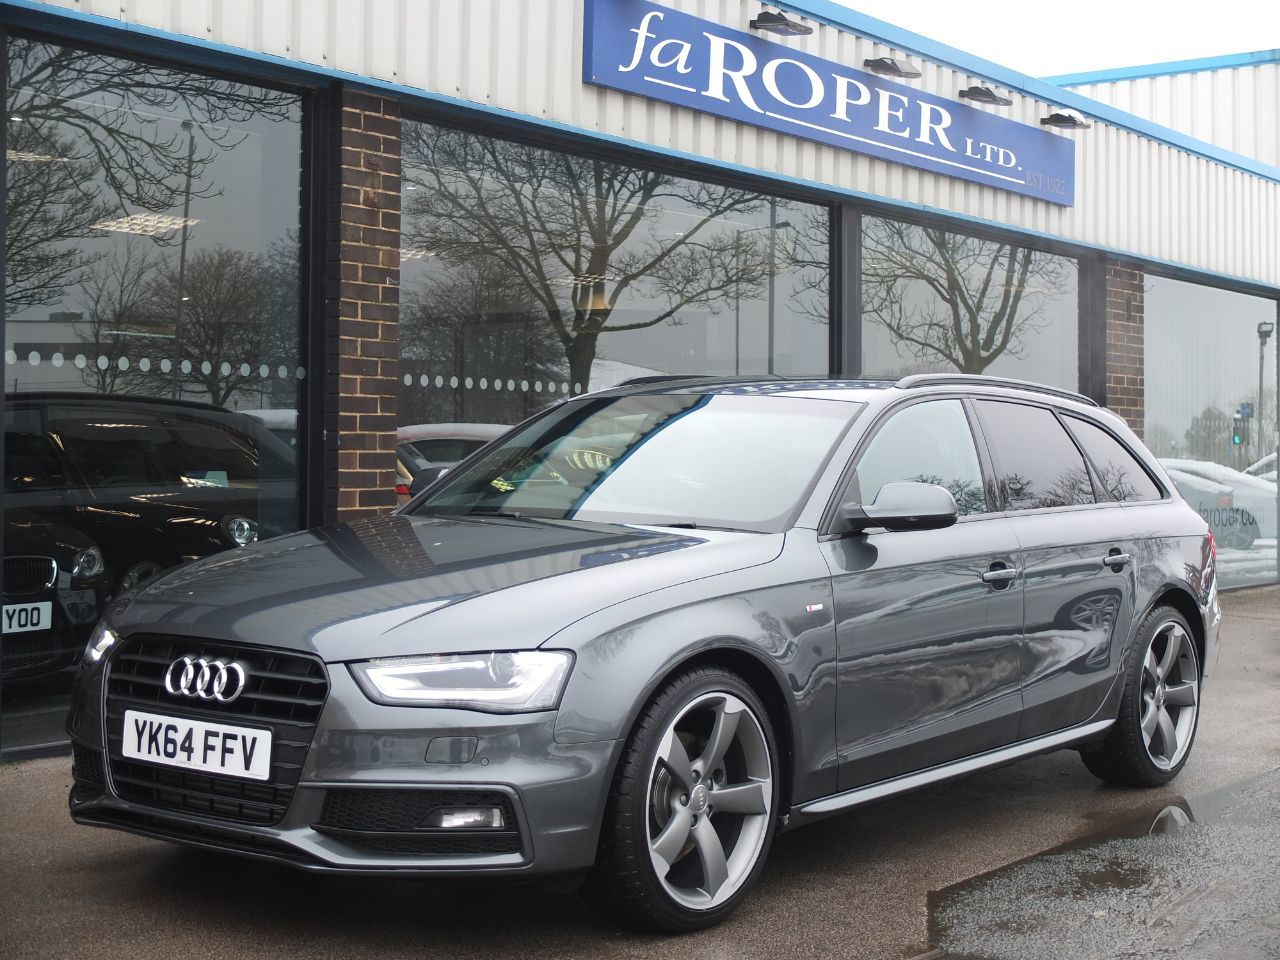 Audi A4 Avant 2.0 TDI 150 ps Black Edition Multitronic +++Spec Estate Diesel GreyAudi A4 Avant 2.0 TDI 150 ps Black Edition Multitronic +++Spec Estate Diesel Grey at fa Roper Ltd Bradford